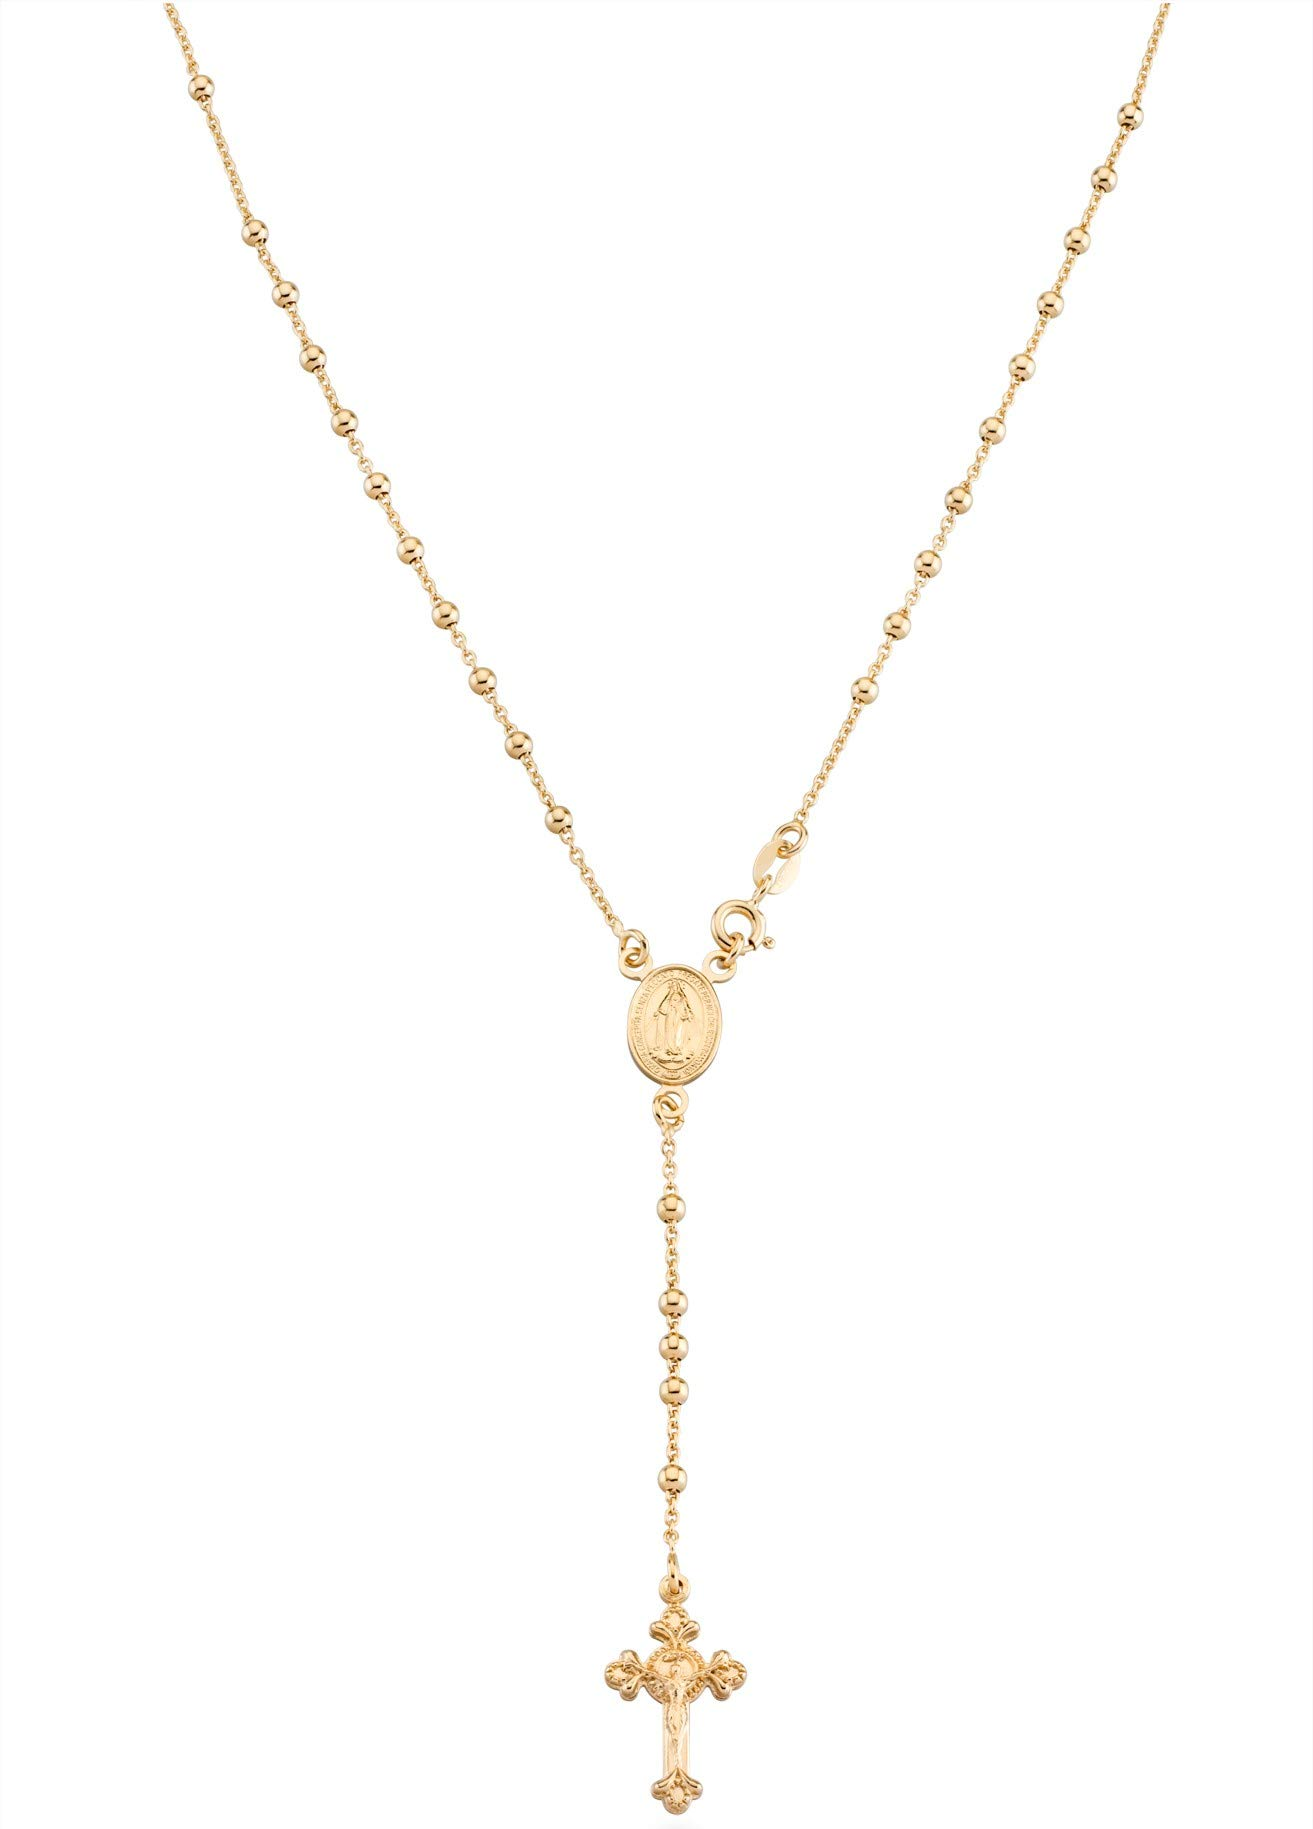 MiaBella 18K Gold Over Sterling Silver Italian Rosary Bead Cross Y Necklace Chain for Women Men 20 Inch